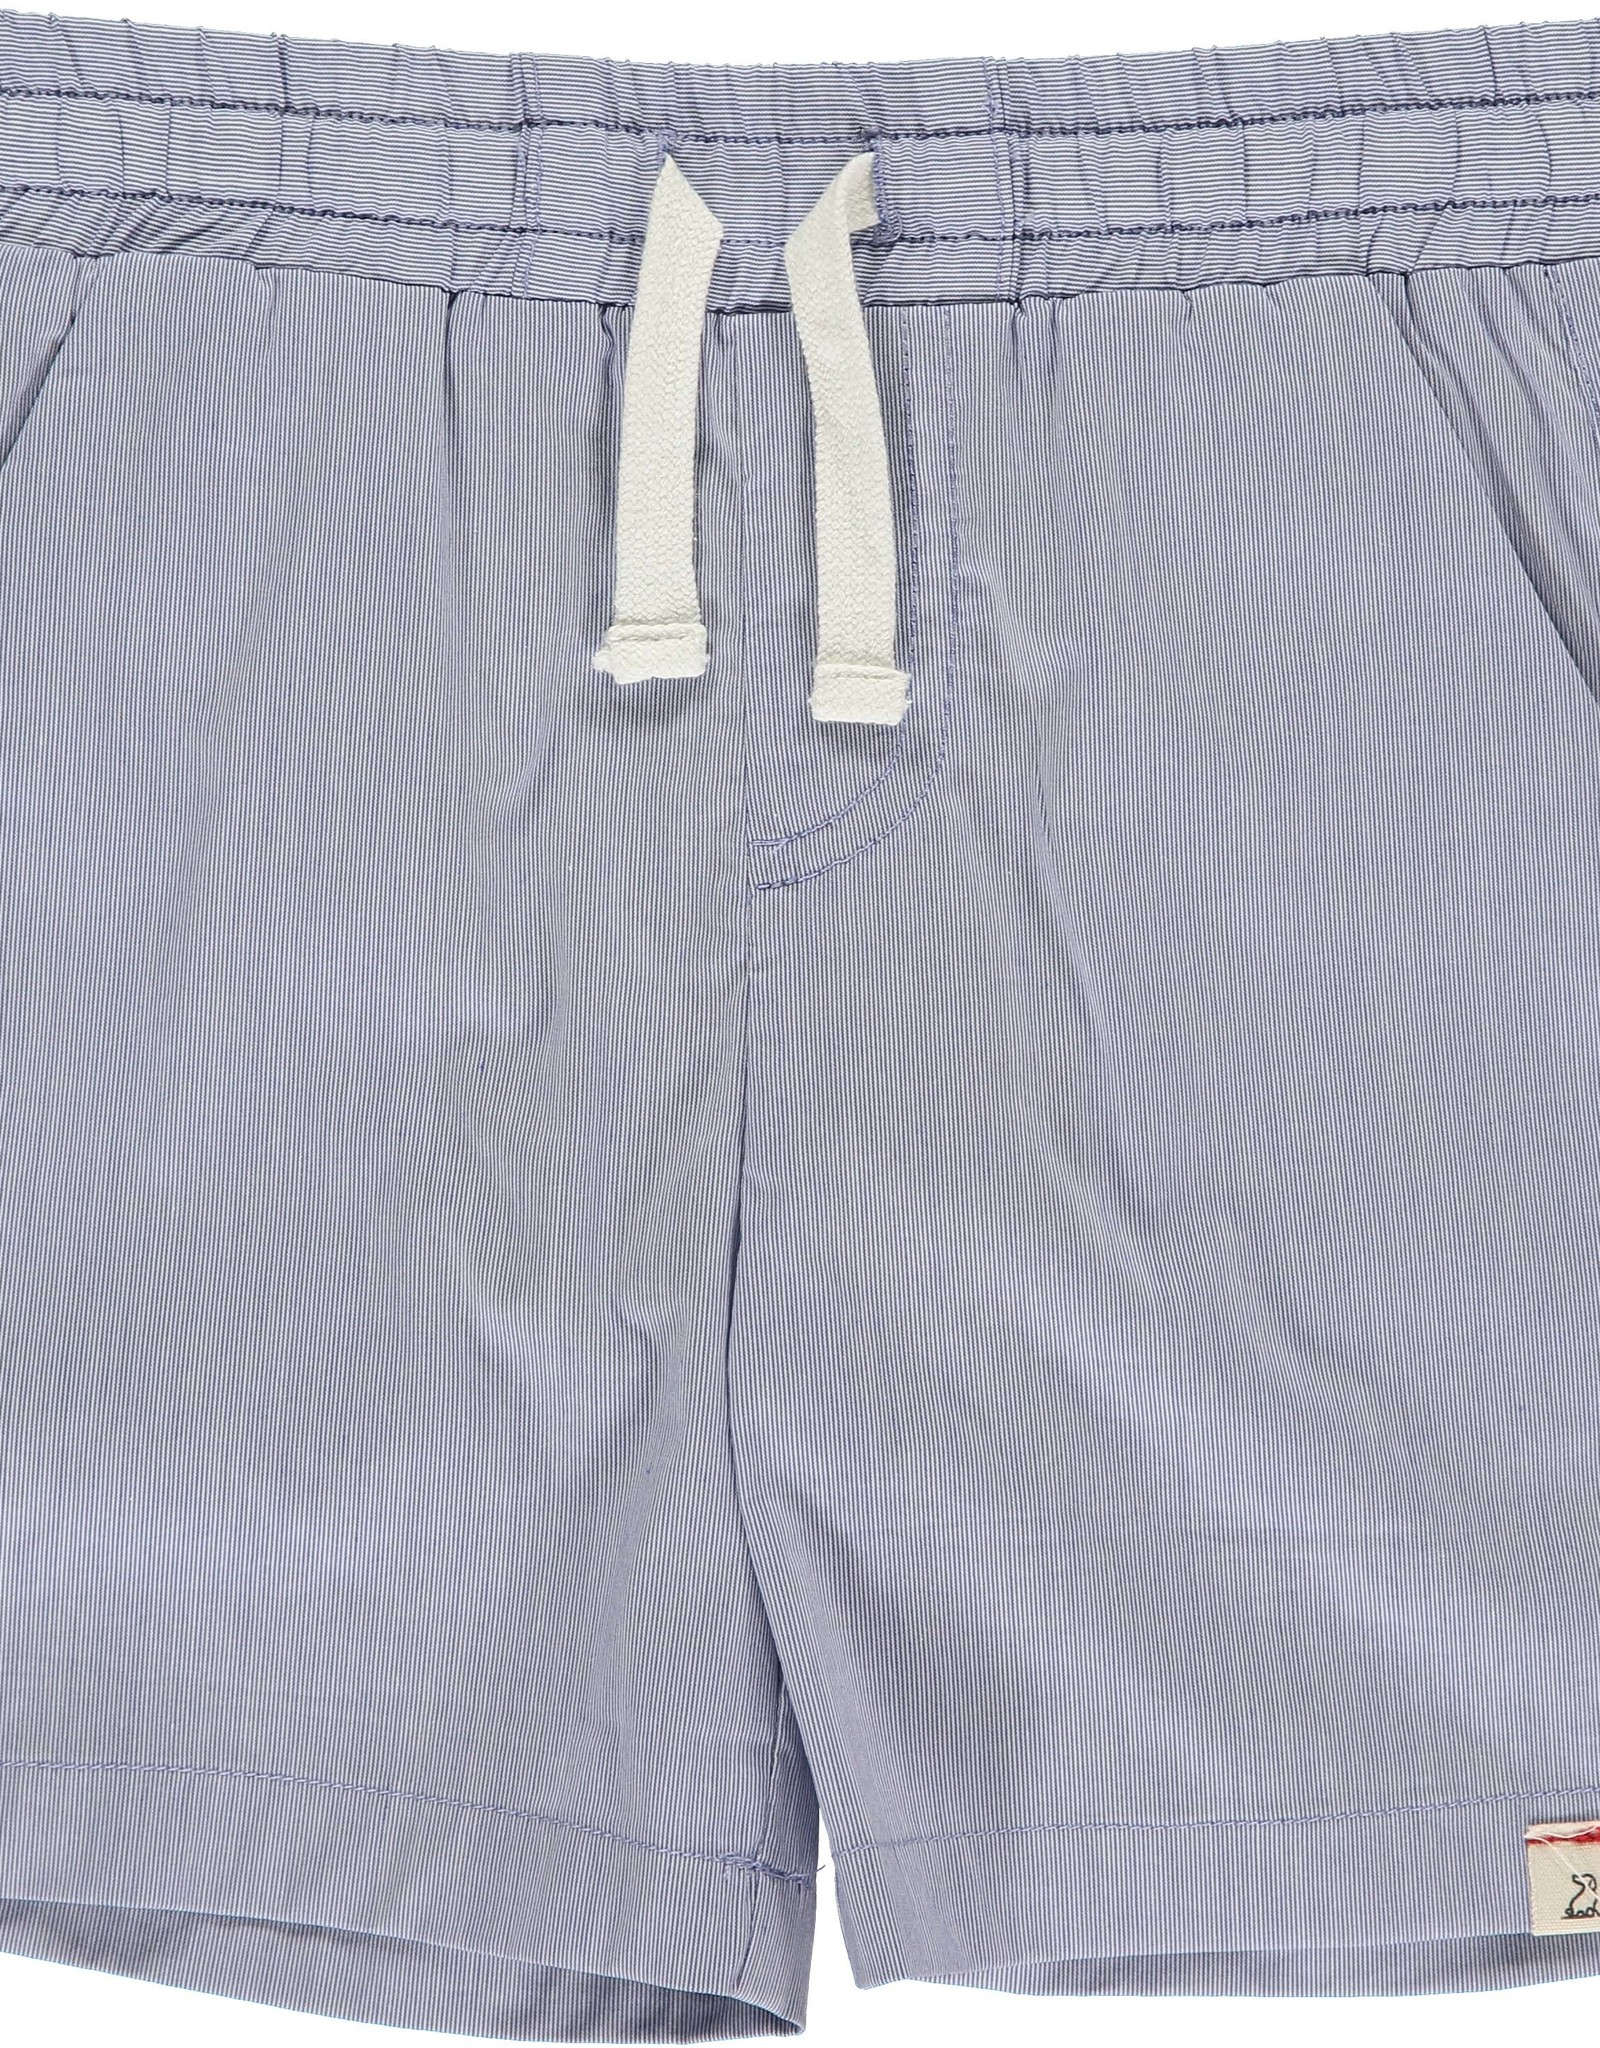 Me & Henry swim shorts- blue stripe